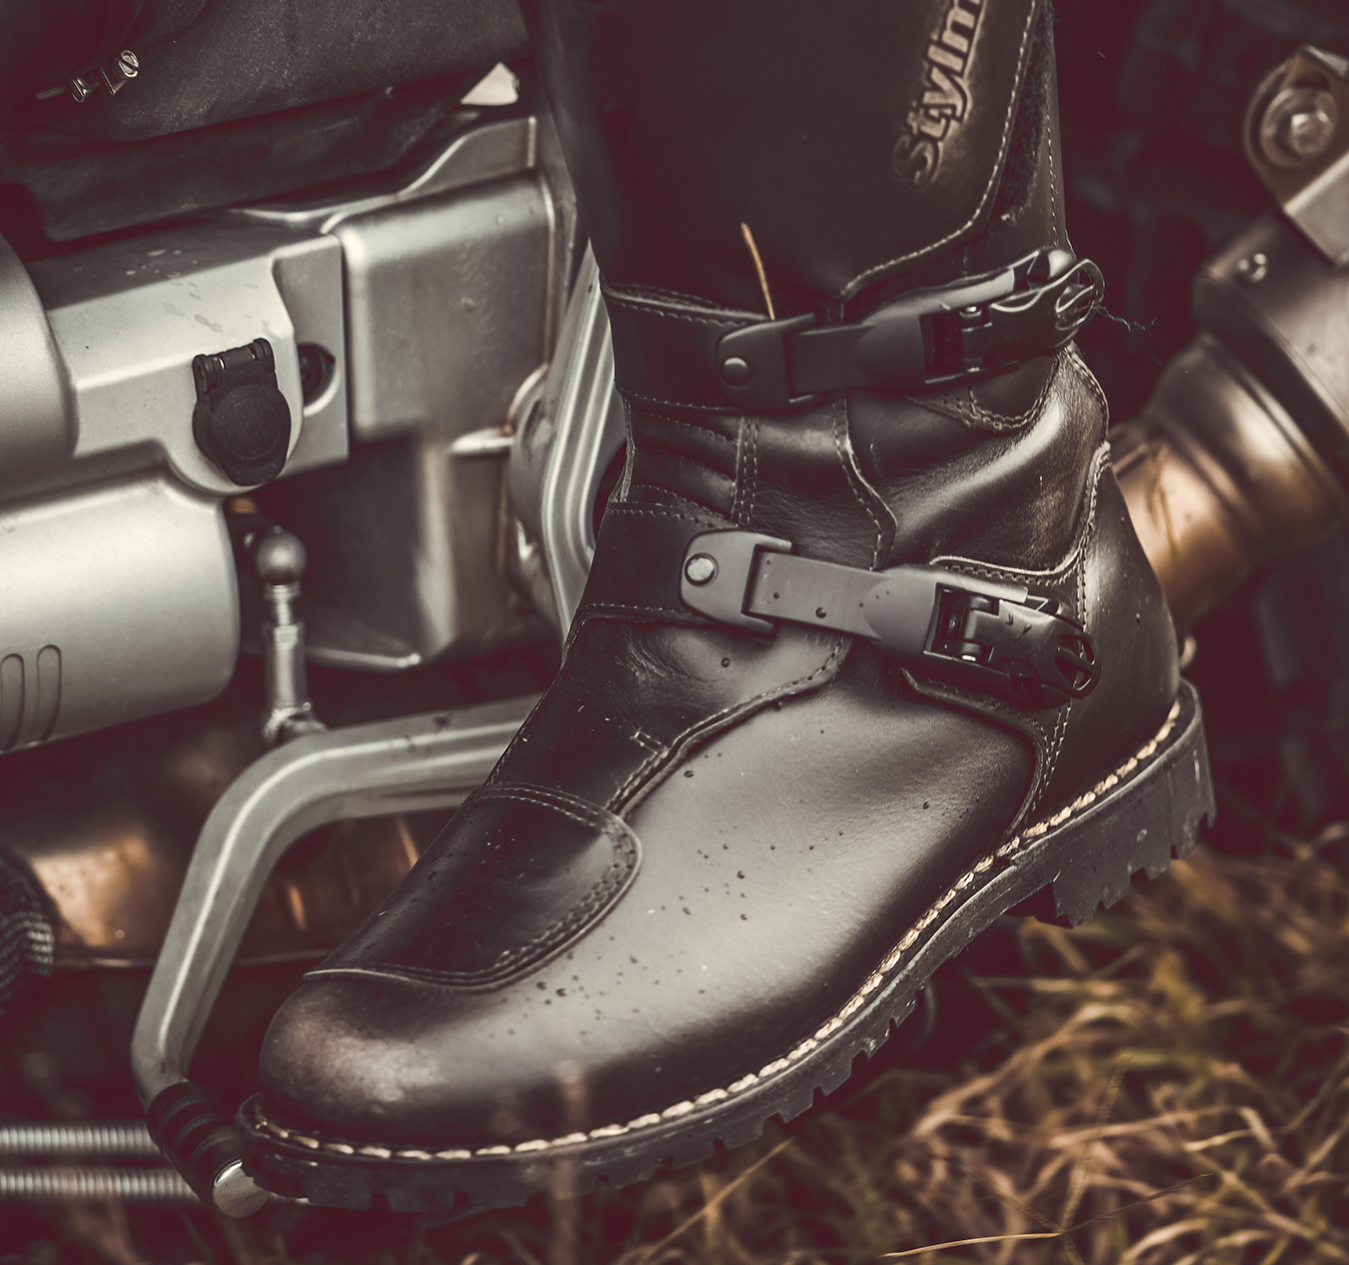 The best boots to wear on motorcycle and what look for in motorcycle boots